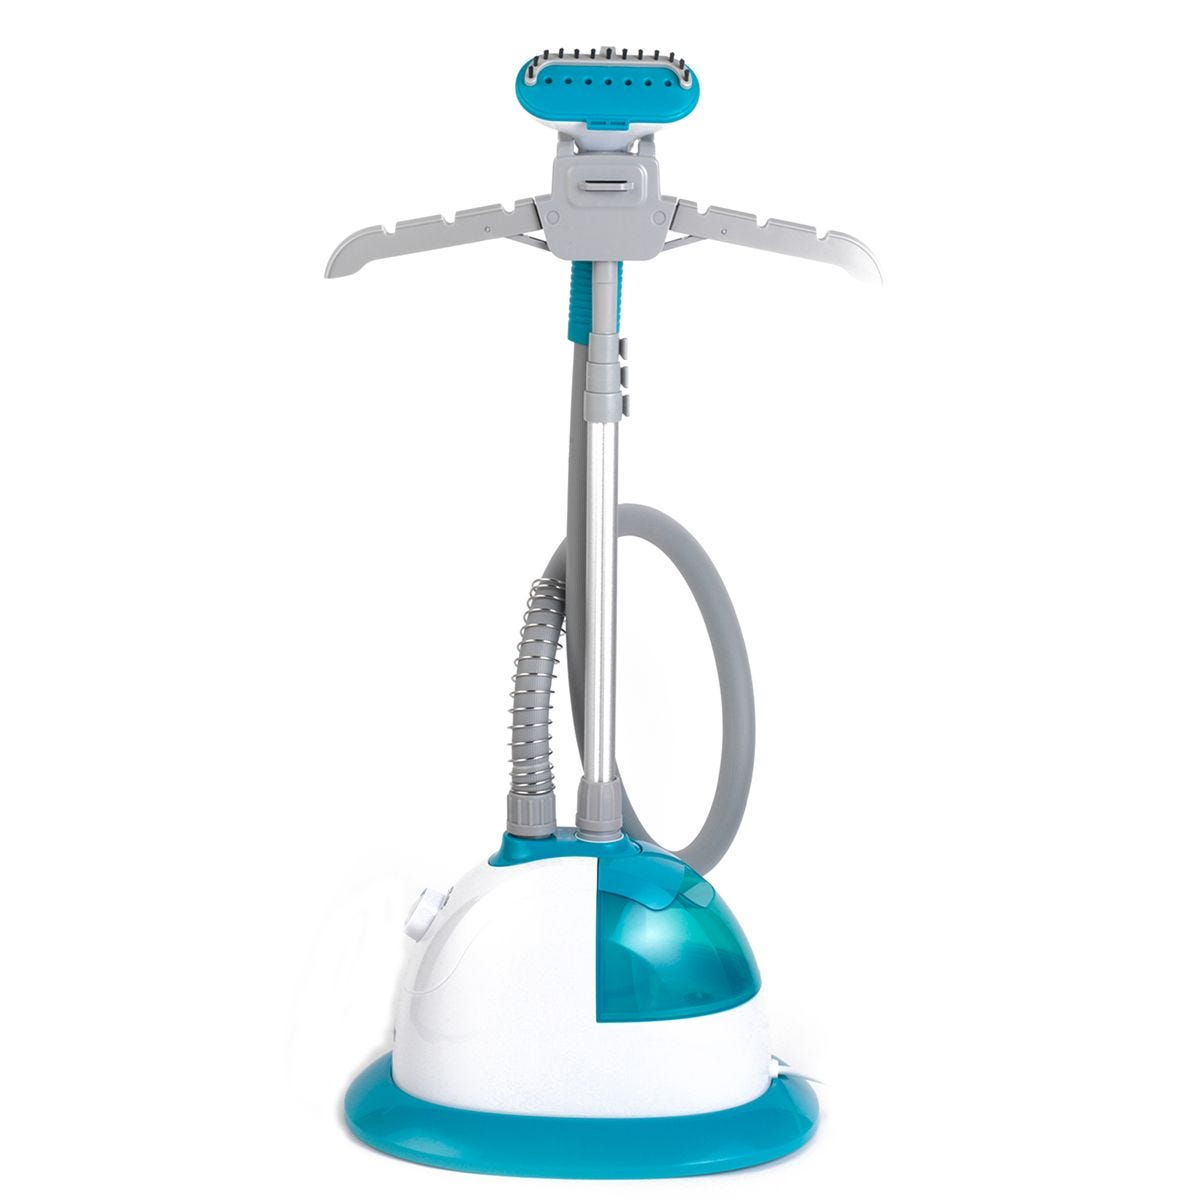 Beldray BEL0578 Upright Garment Fabric Steamer - Blue/White